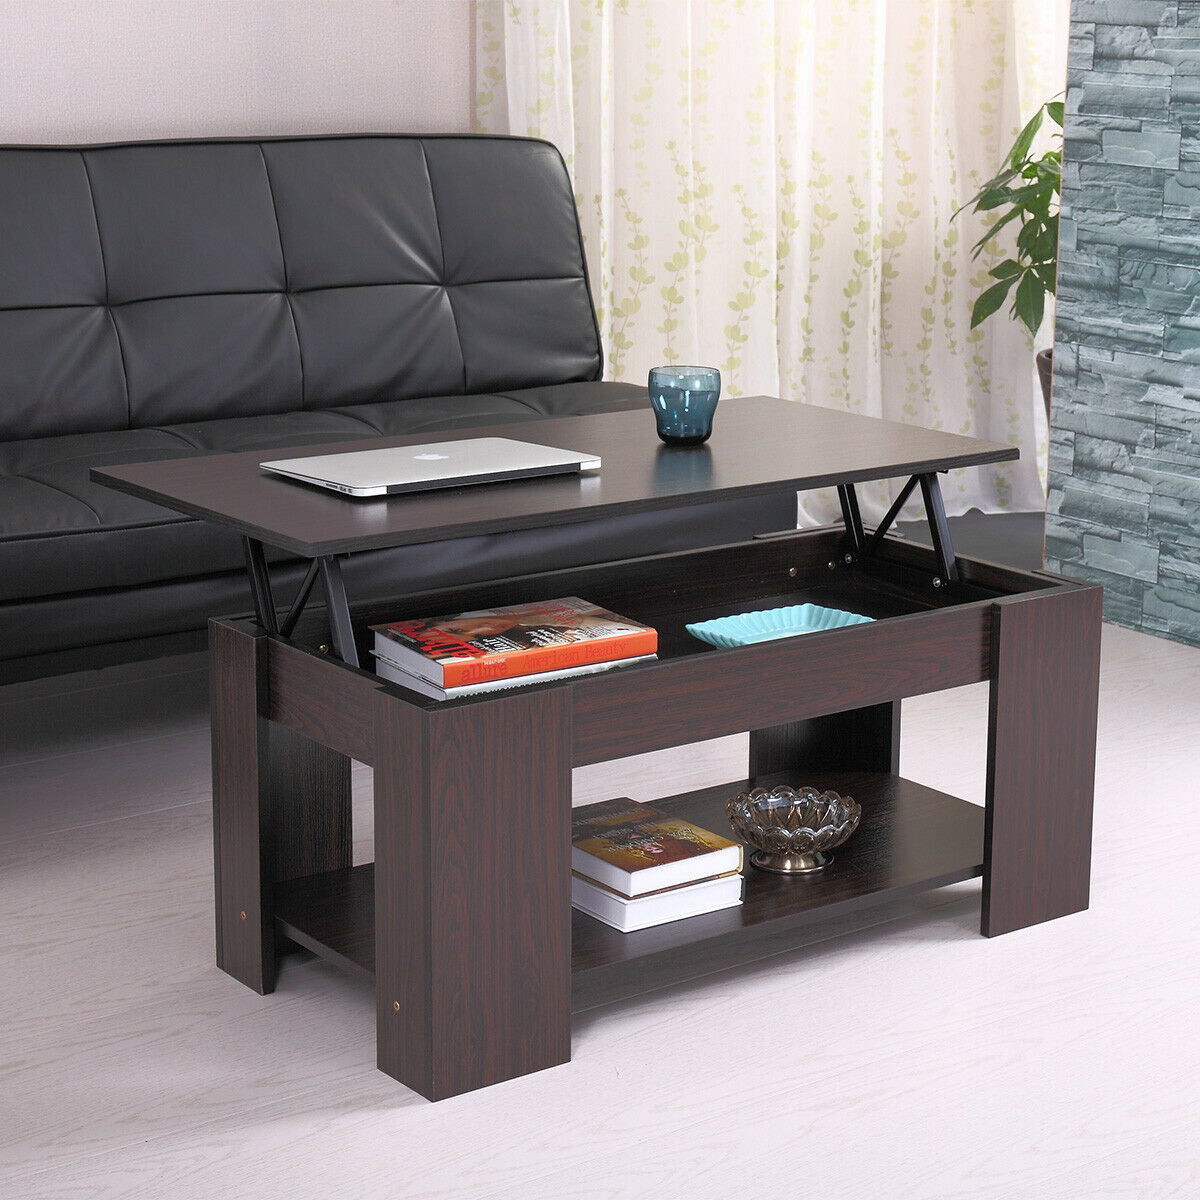 Lift Top Storage Coffee Table Trunk Wood Living Room Furniture